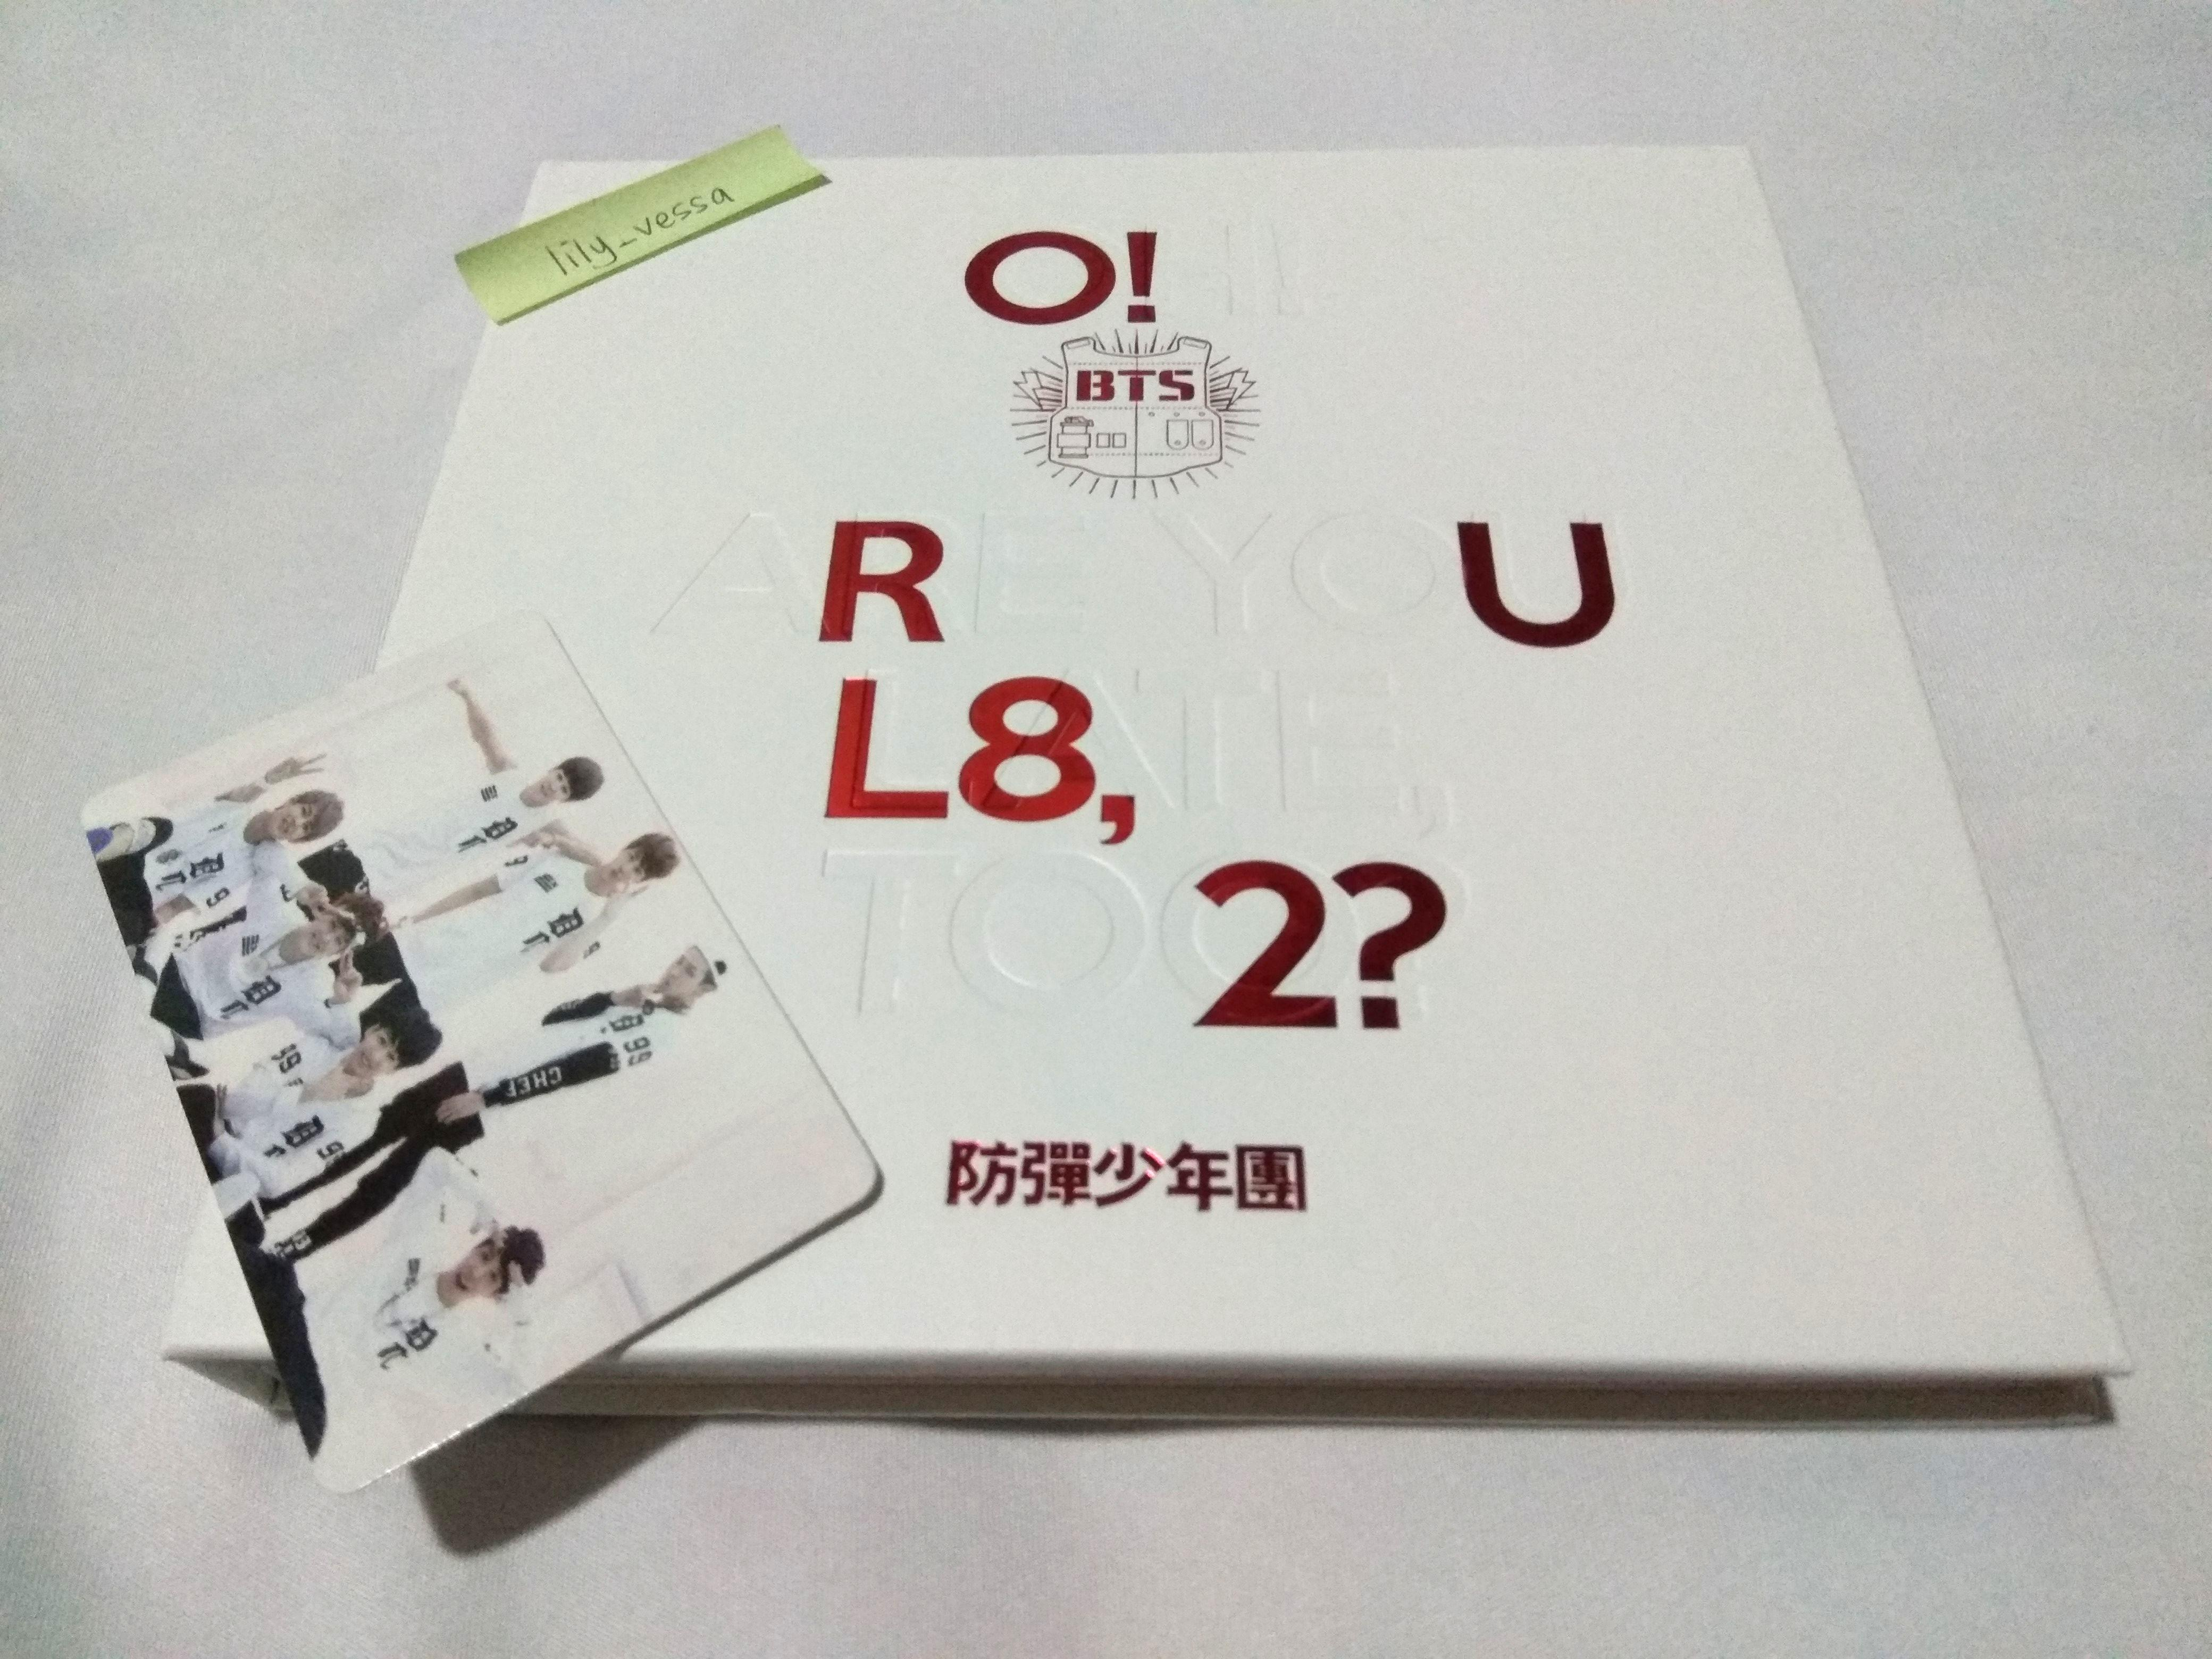 BTS O!RUL8,2? Album with group pc